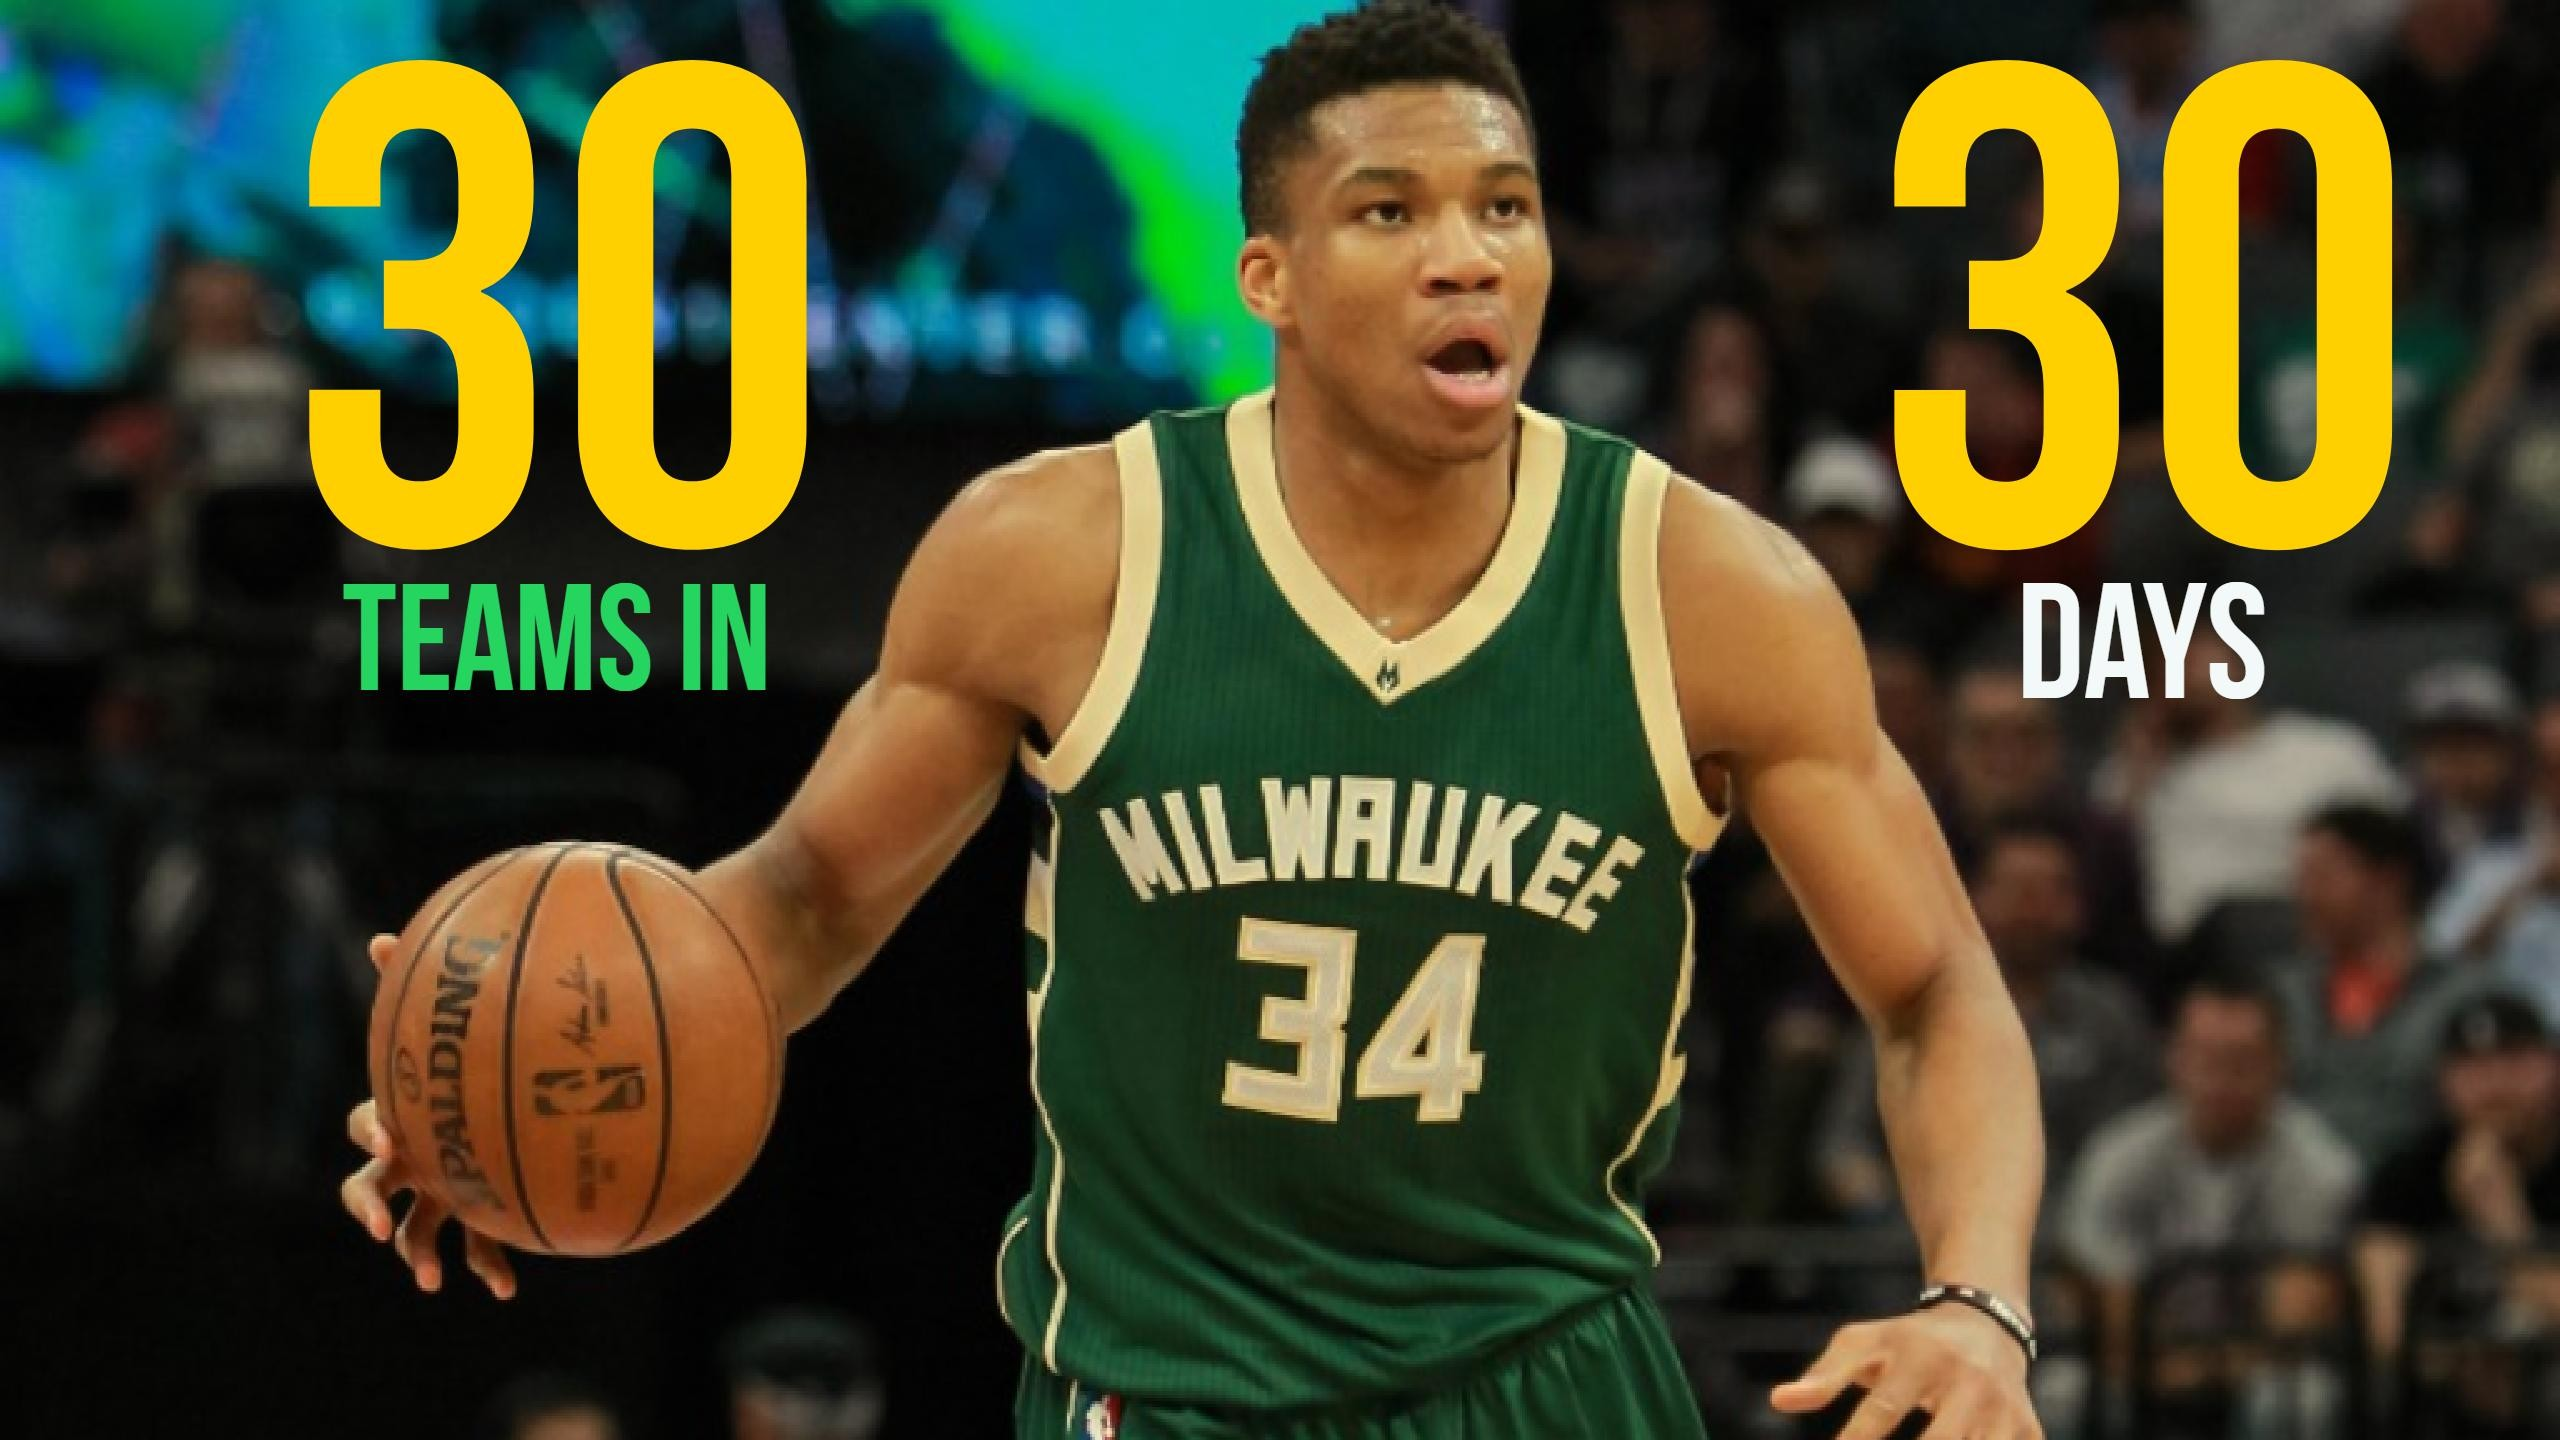 2560x1440 30 teams in 30 days: No Freak accident - Milwaukee Bucks could surprise